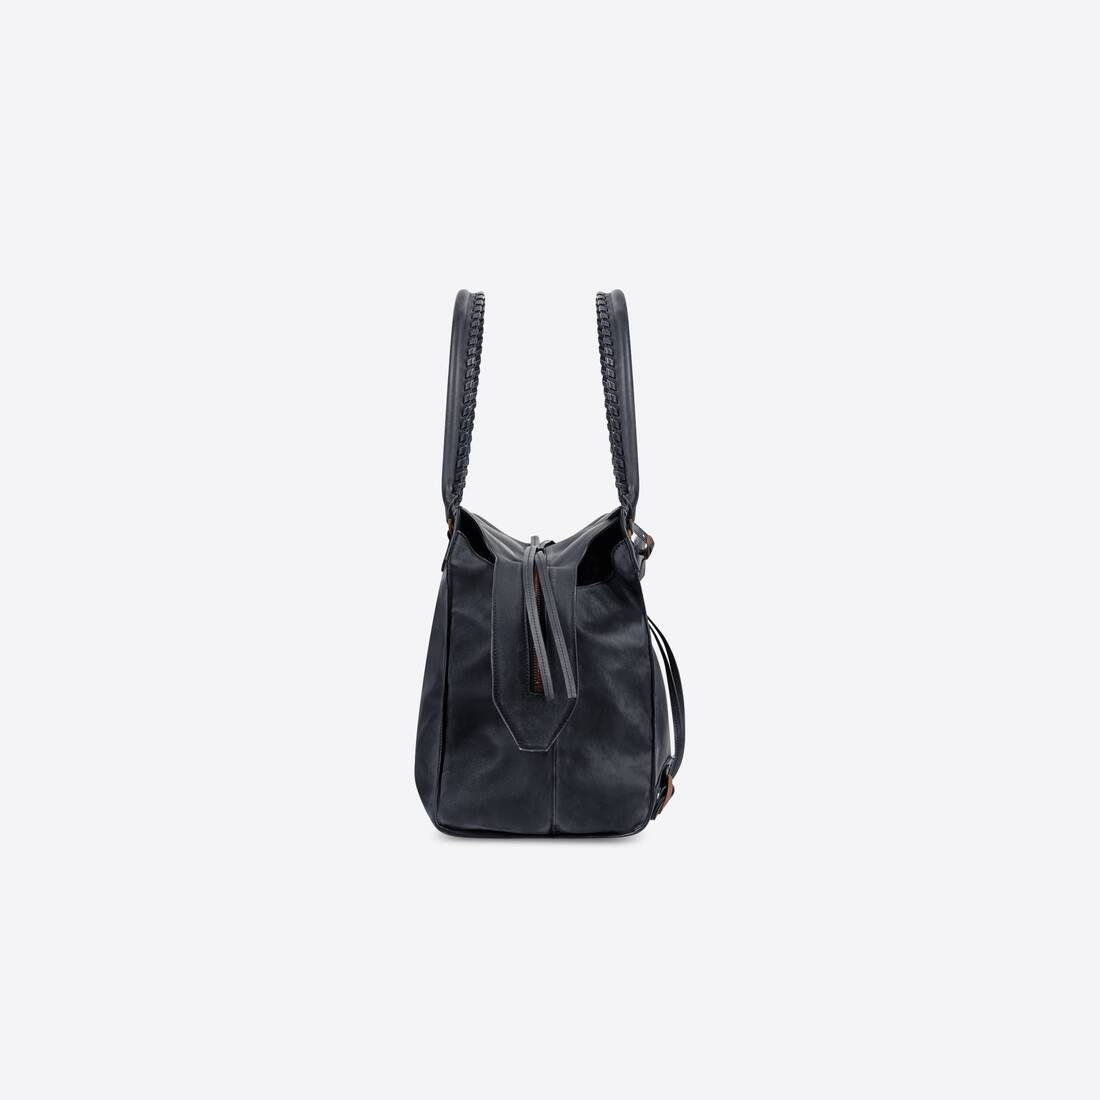 Display zoomed version of neo classic large top handle bag 3